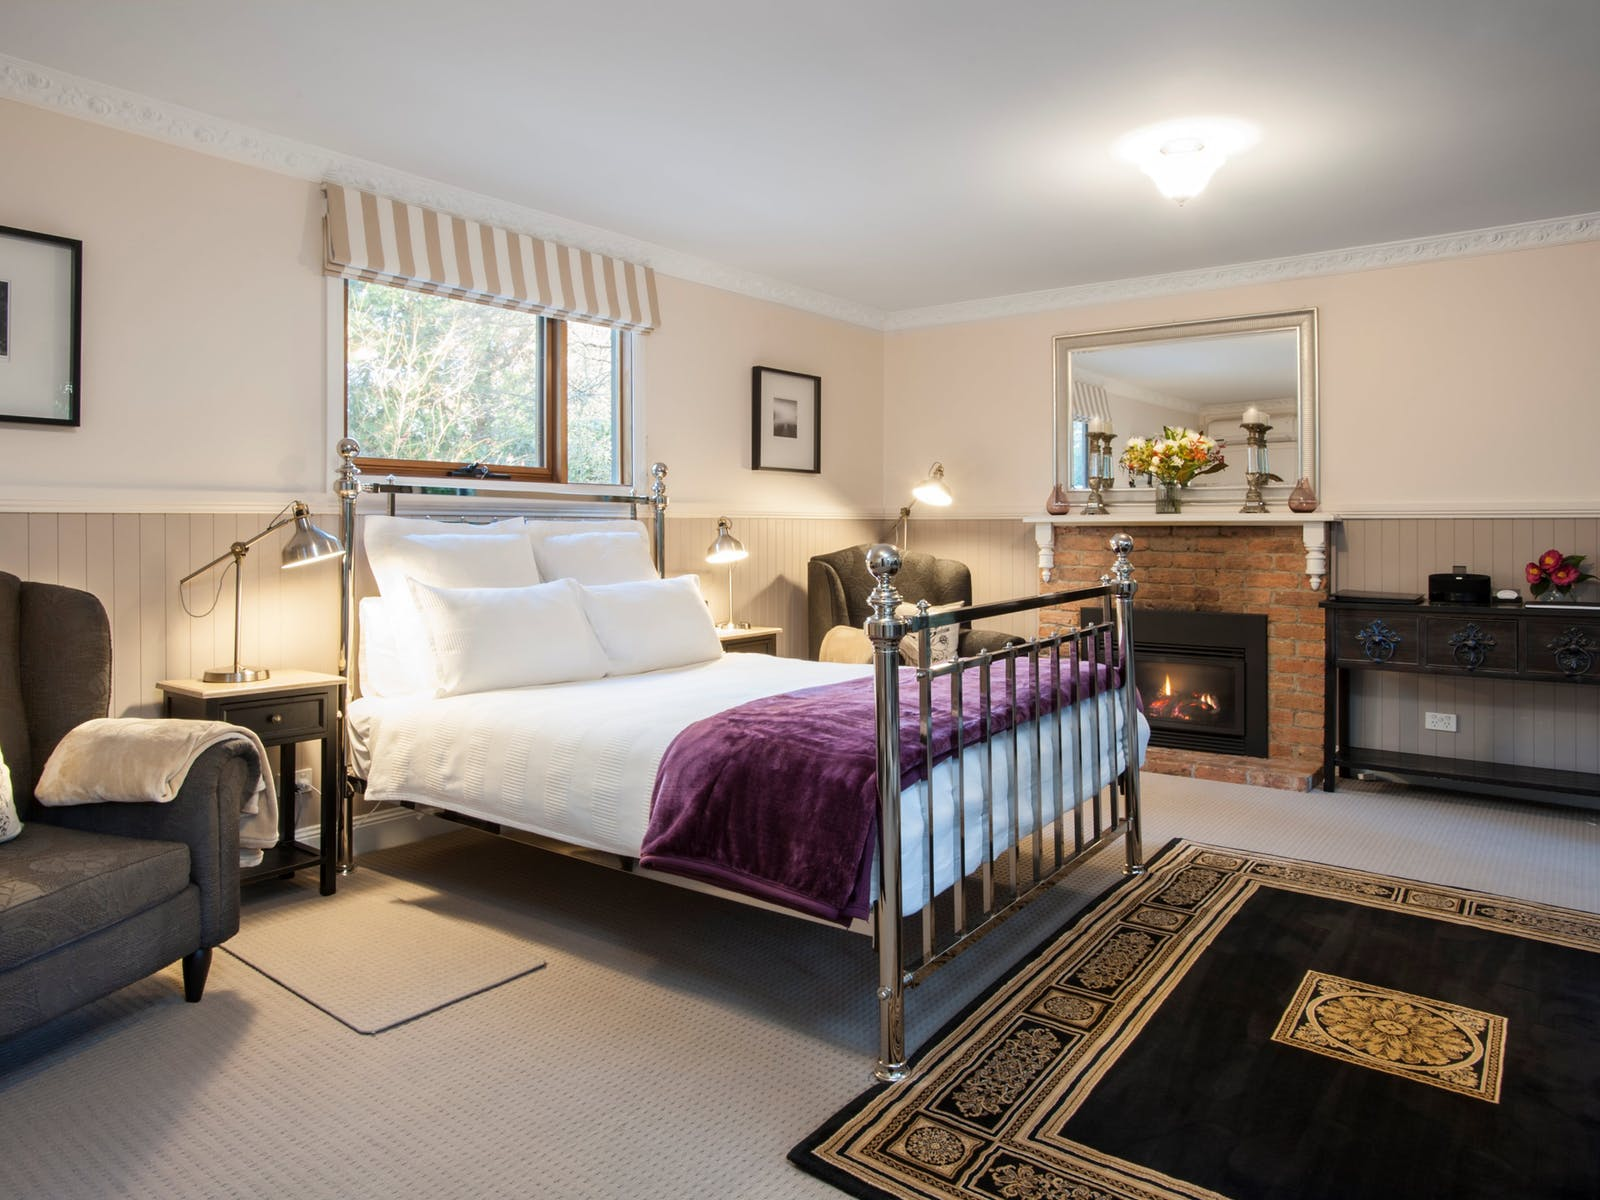 Camellia longe/bedroom with comfy chairs, gas fire & queen size bed